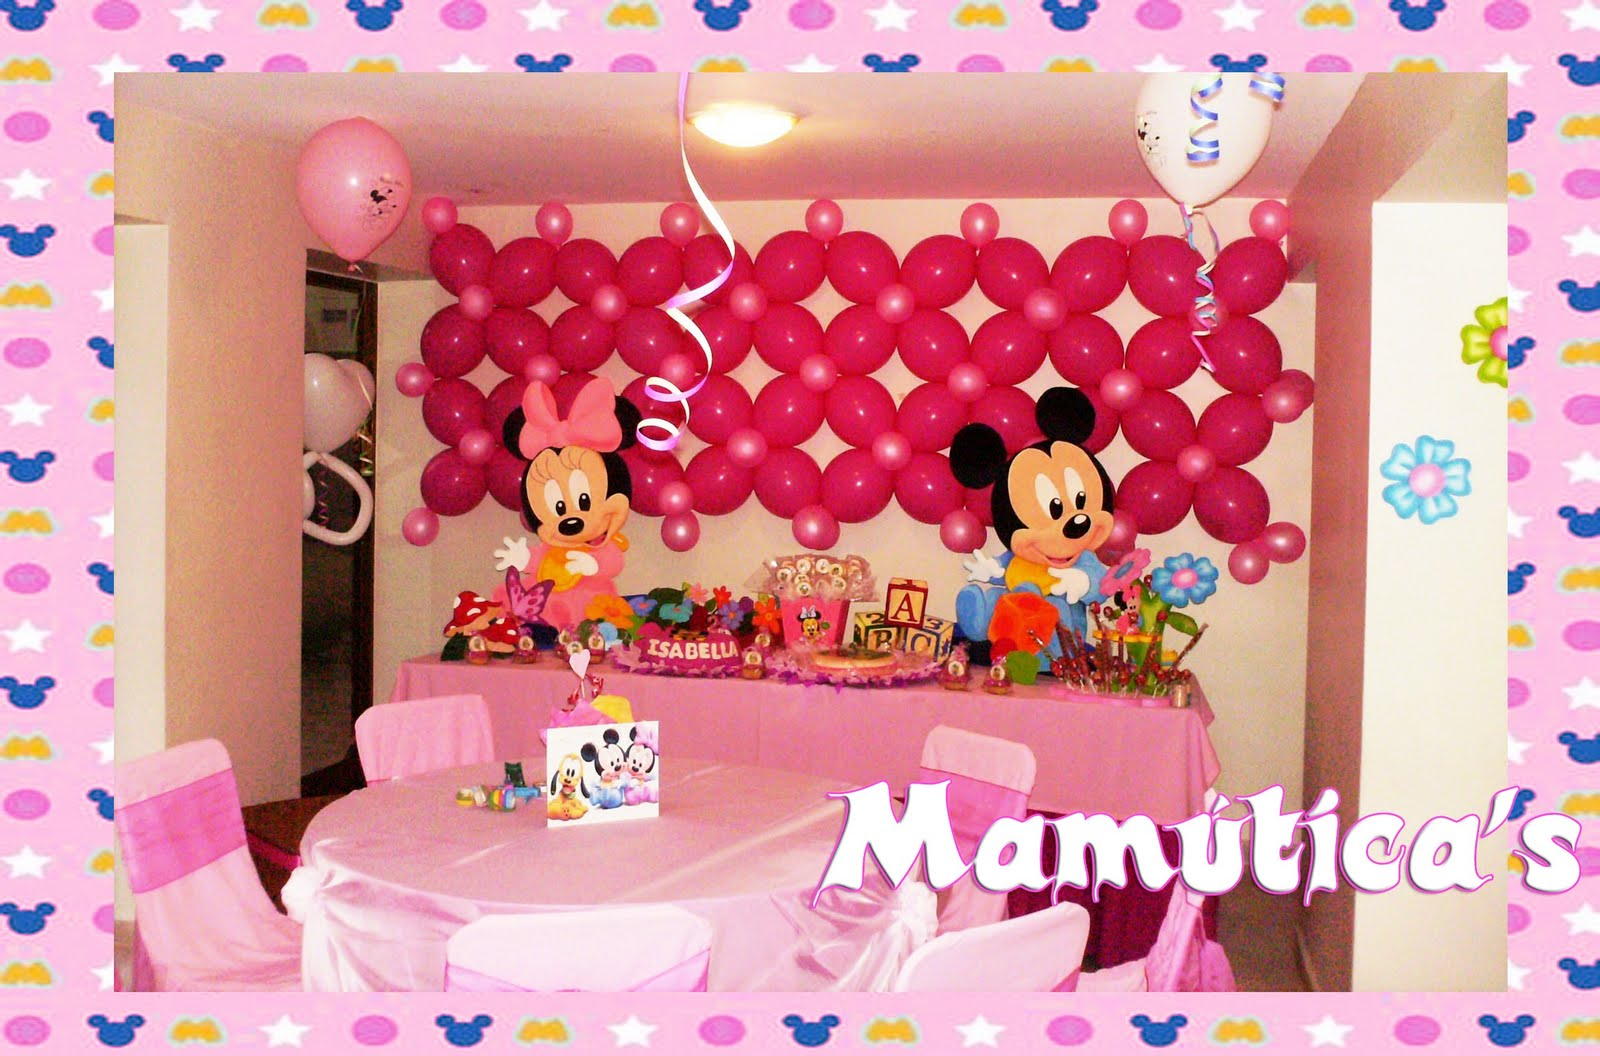 Decoracion Con Globos Minnie Mouse Zebra Graffiti Images